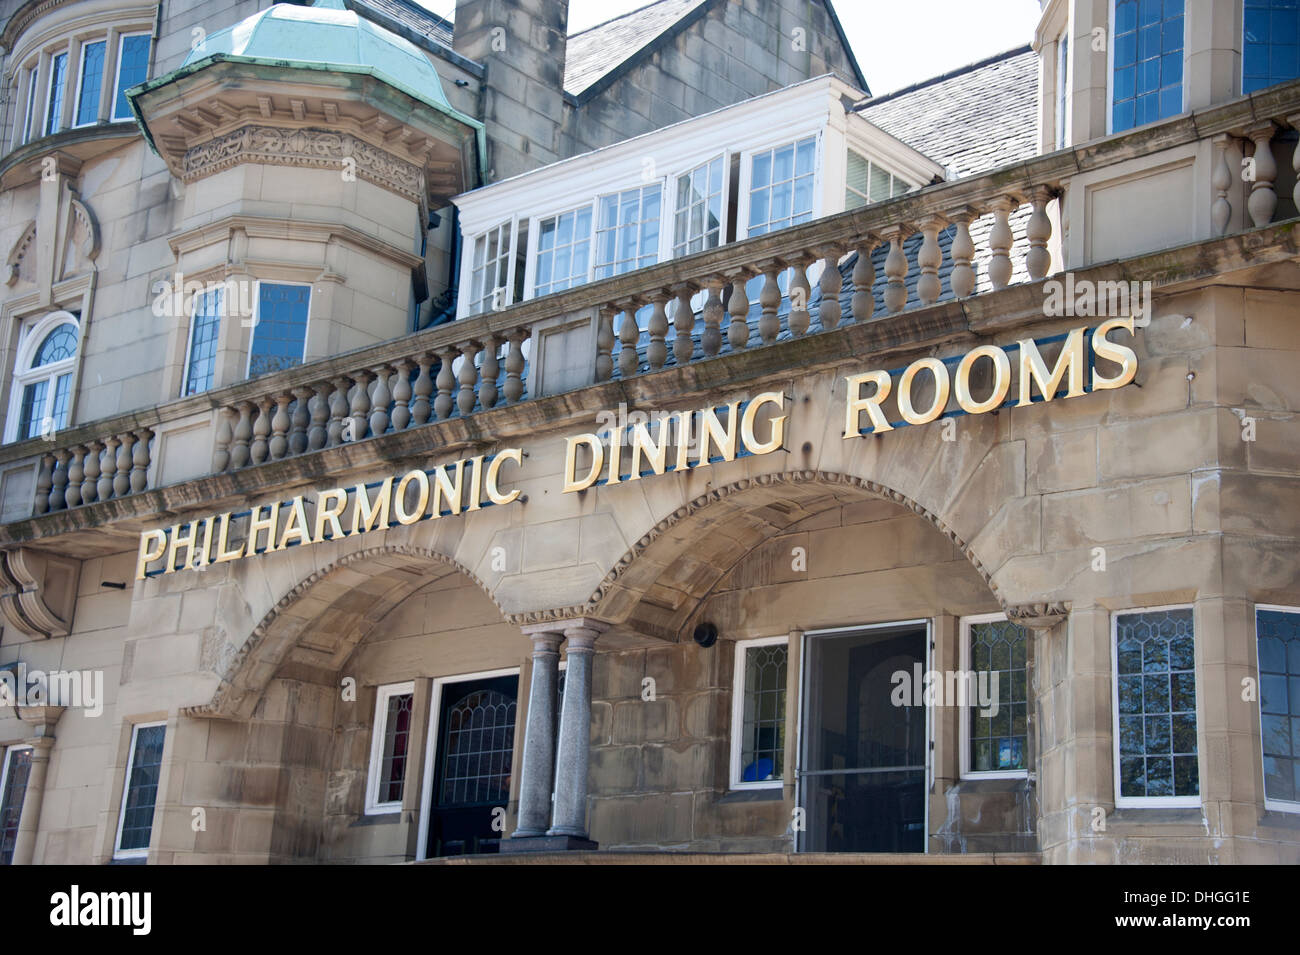 Philharmonic dining rooms liverpool